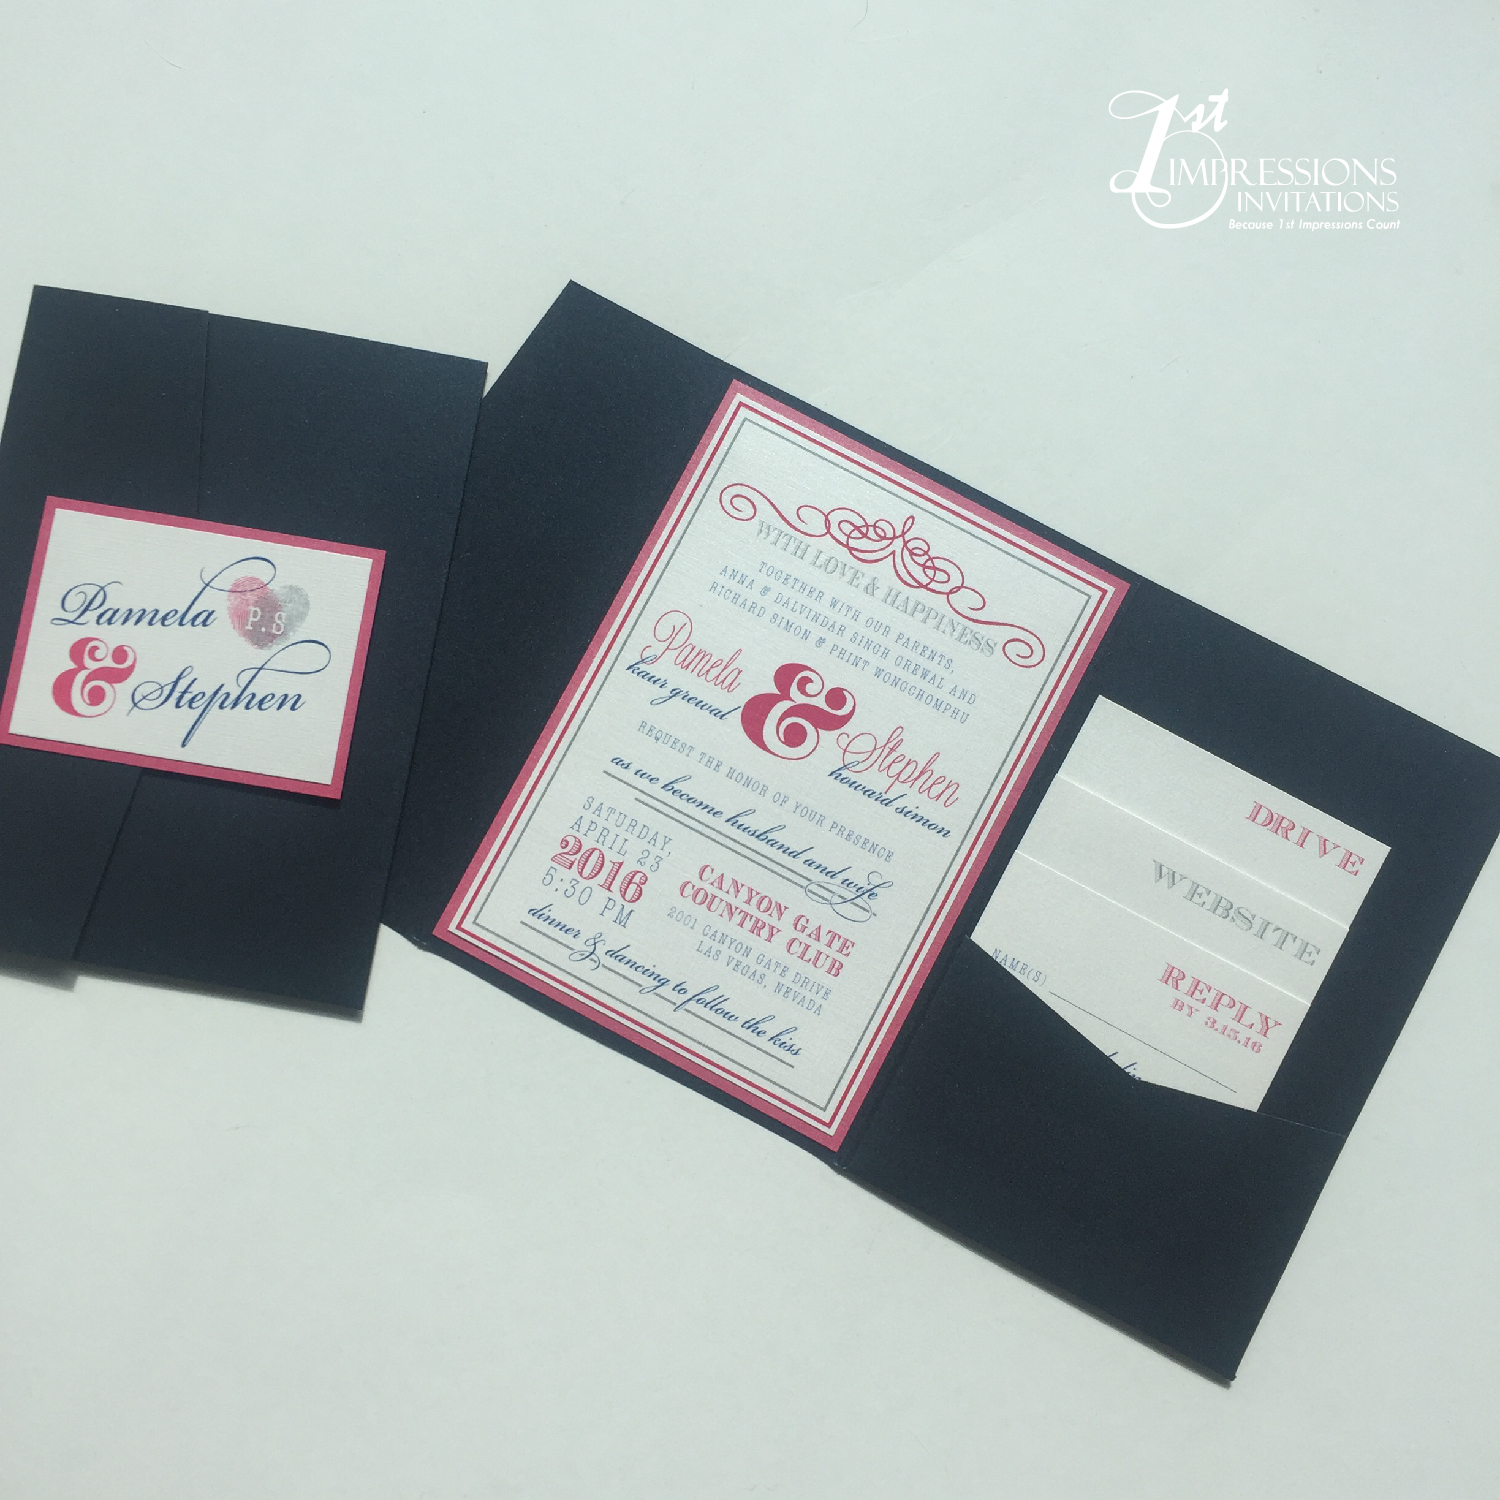 1st Impressions Invitations